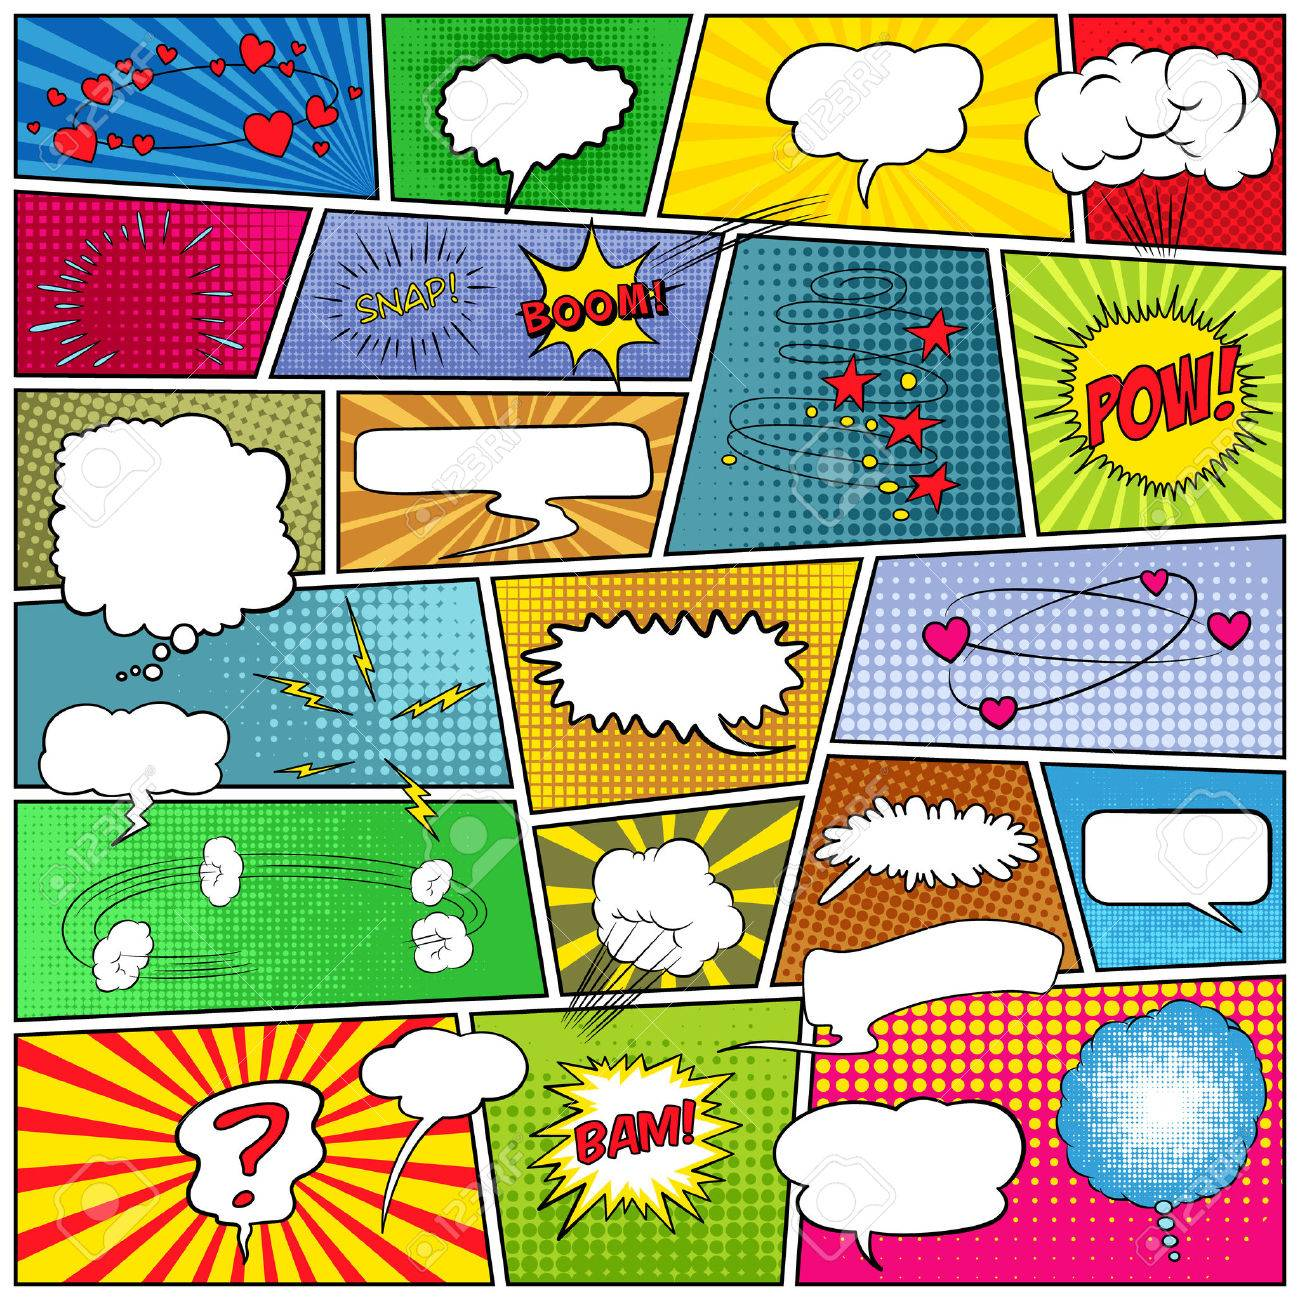 Mock-up of a typical comic book page with speech bubbles, symbols, sound effects and colored halftone strip backgrounds. Vector EPS10 illustration. - 50720390